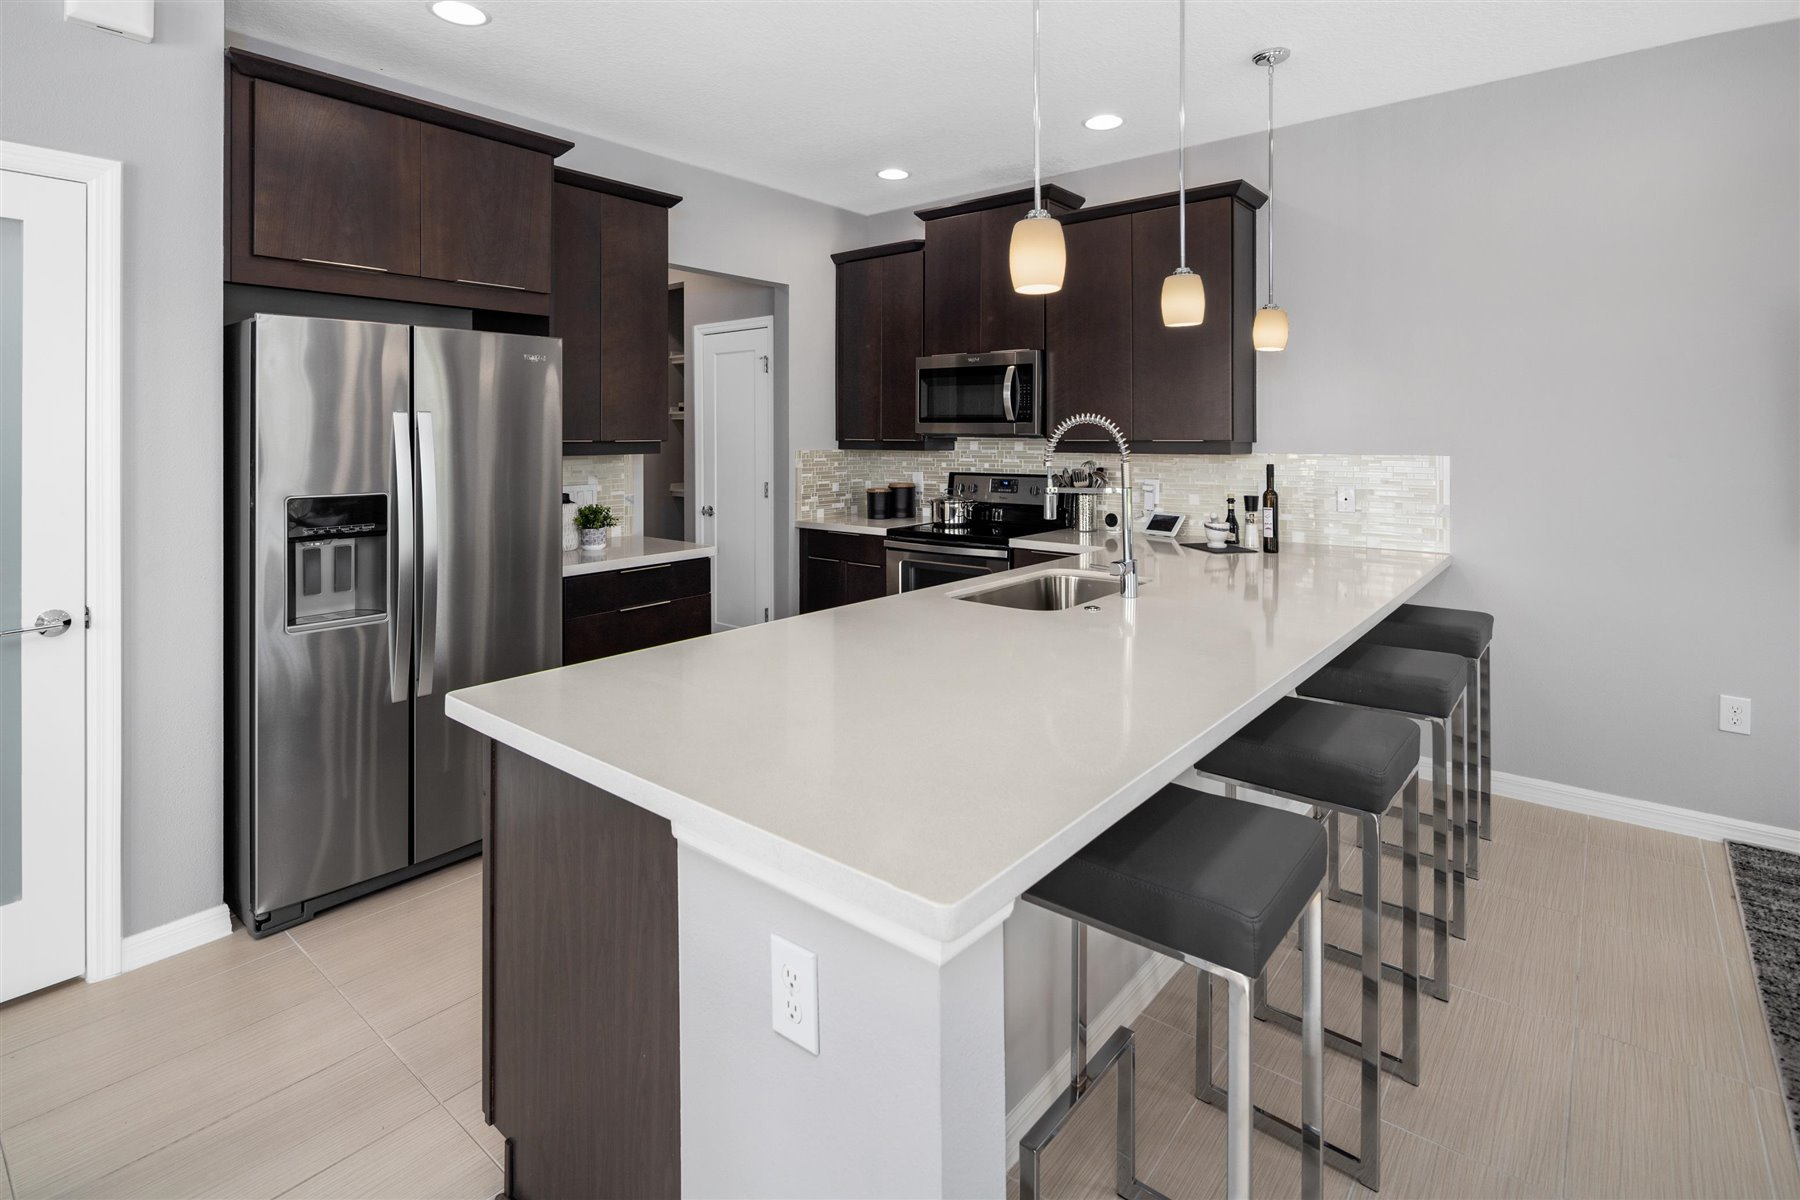 Marabel III Plan Kitchen at Randal Walk in Orlando Florida by Mattamy Homes